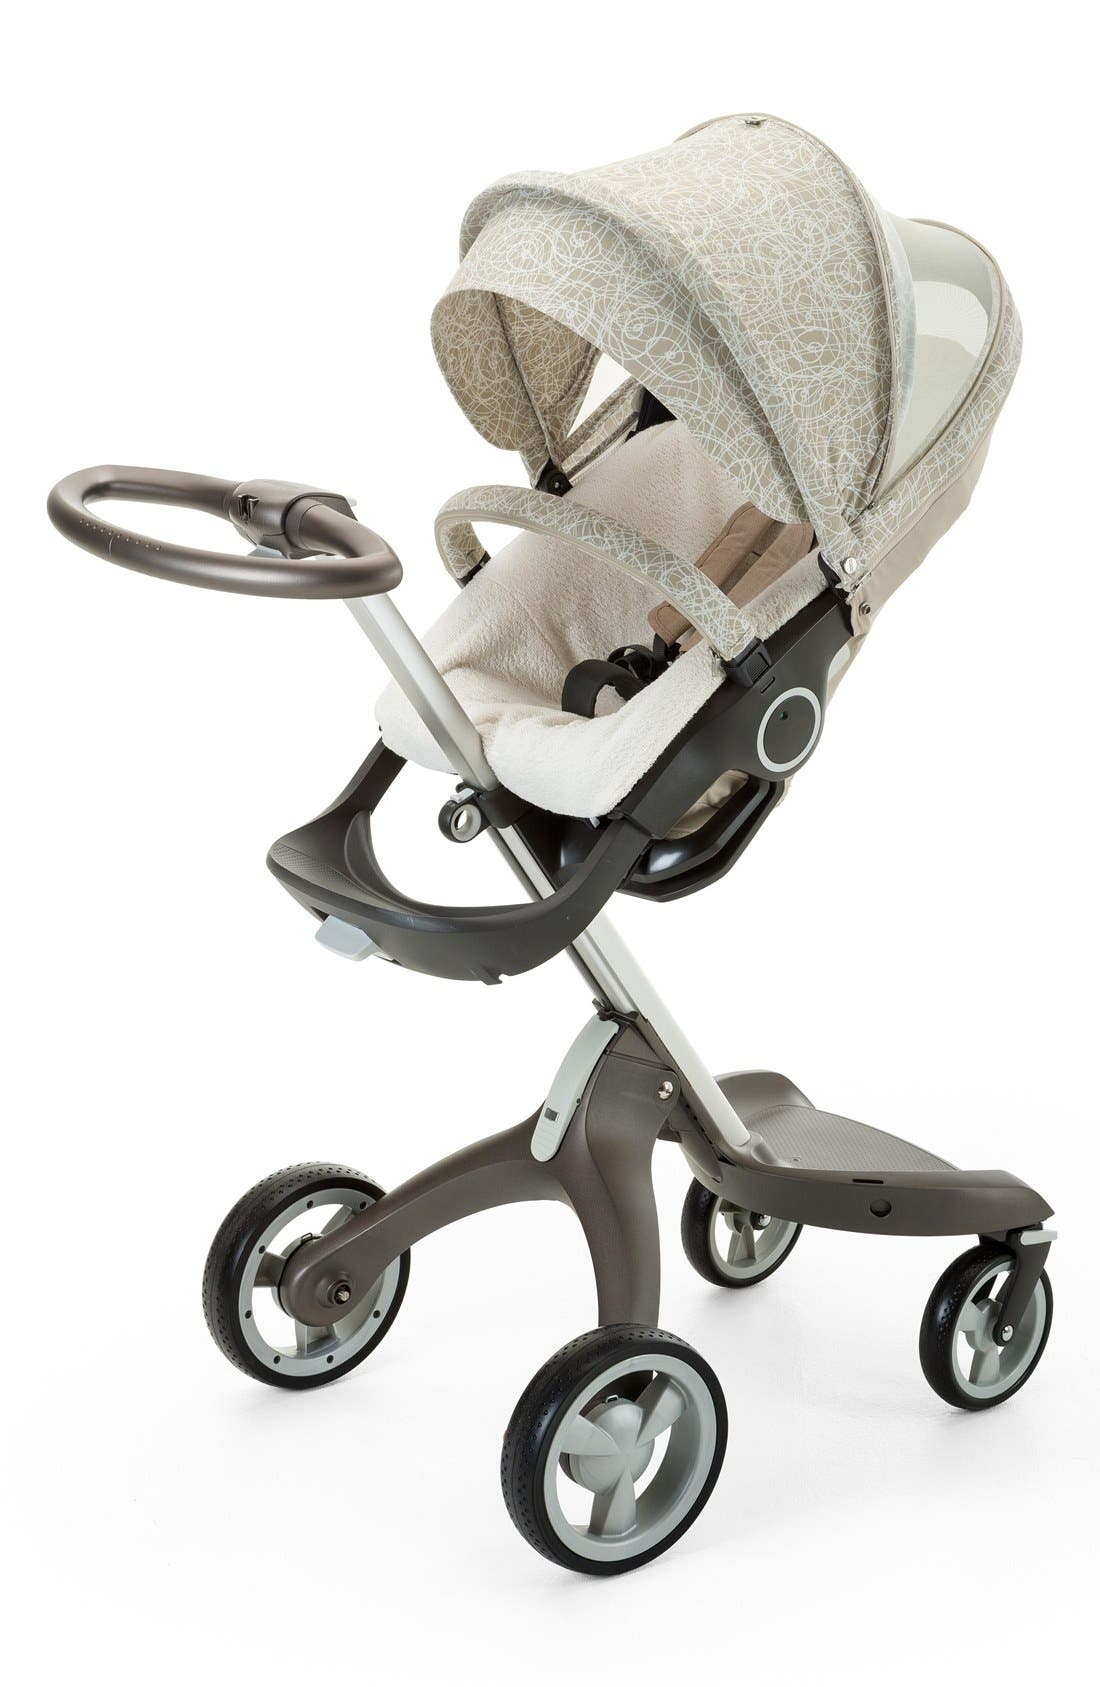 STOKKE Baby 'Xplory® Stroller Summer Kit' Shade Set